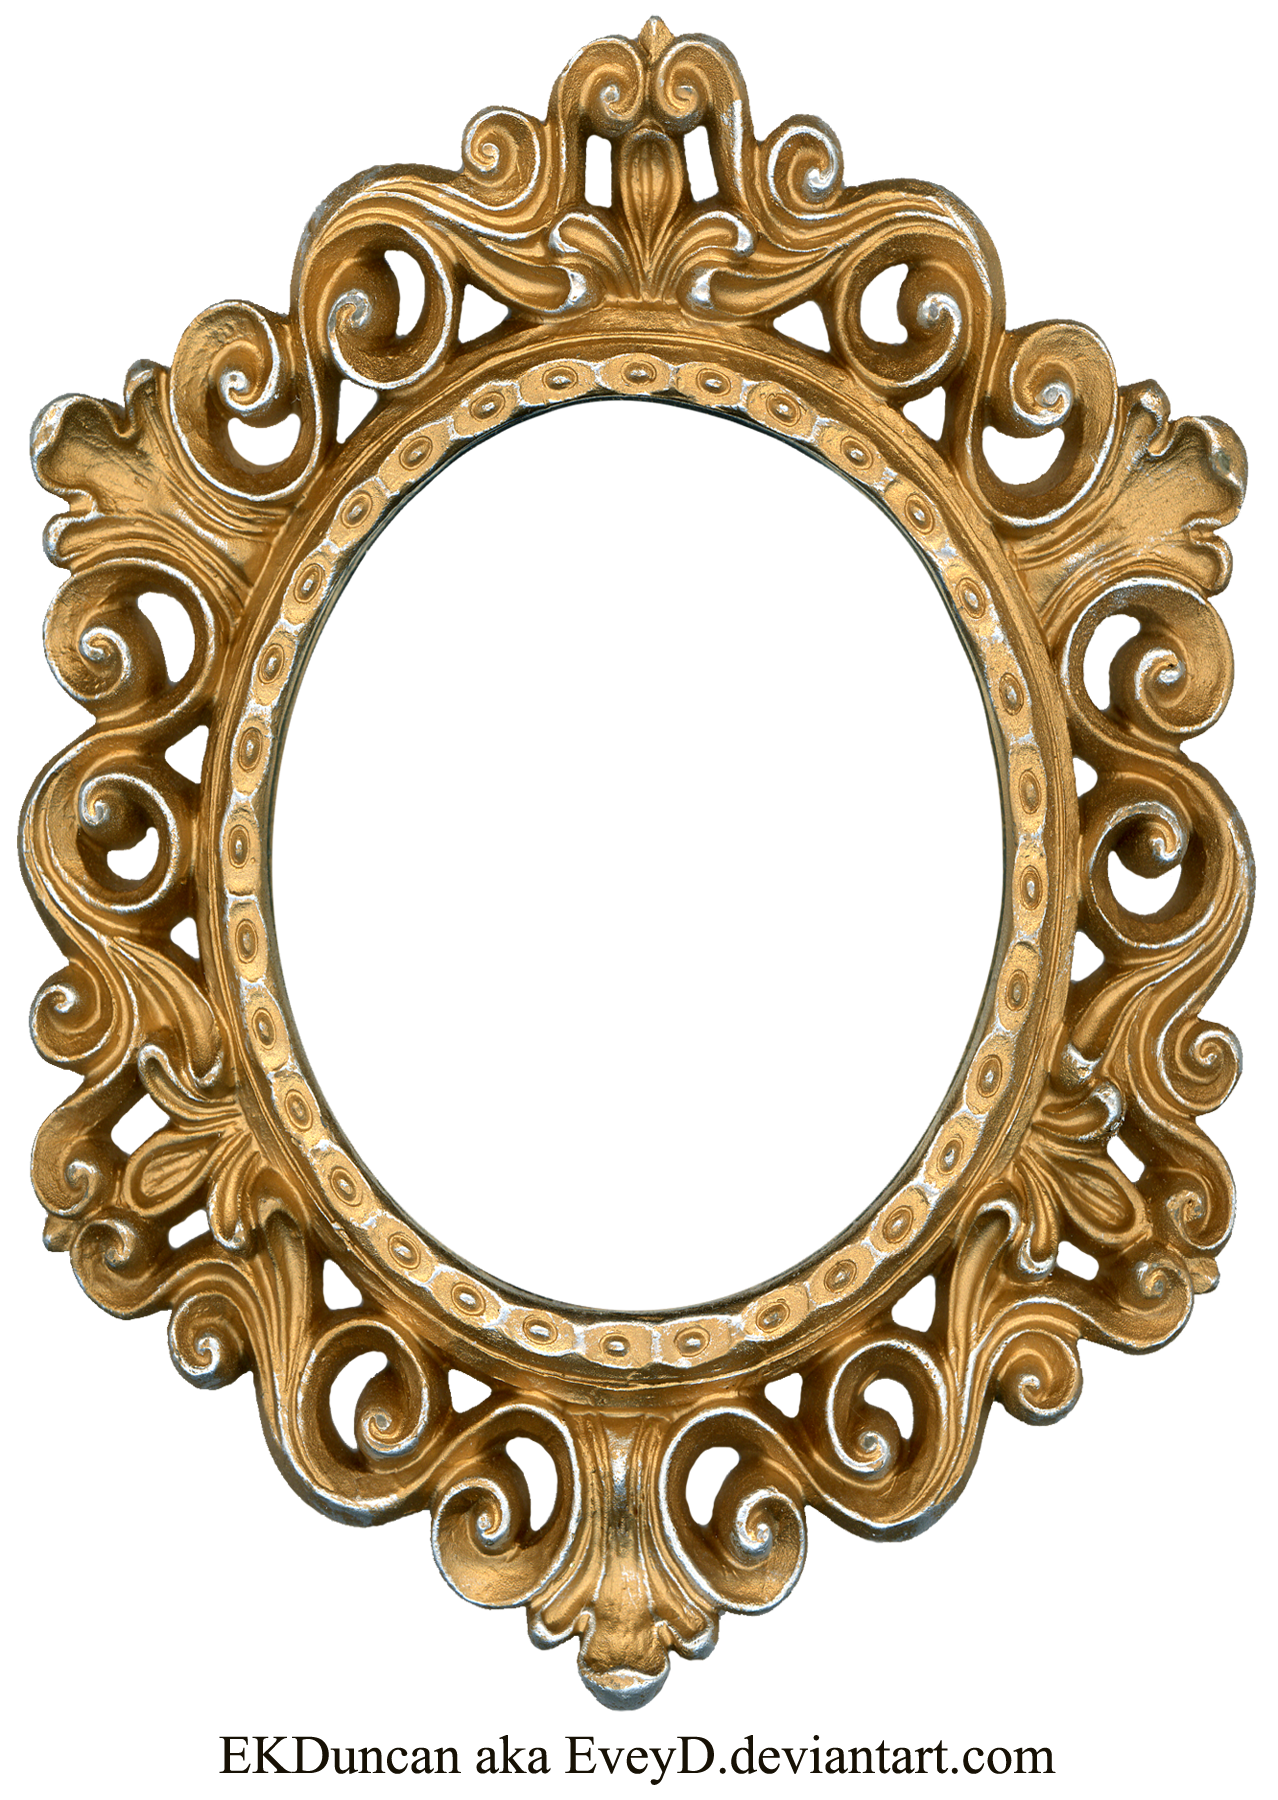 old mirror png